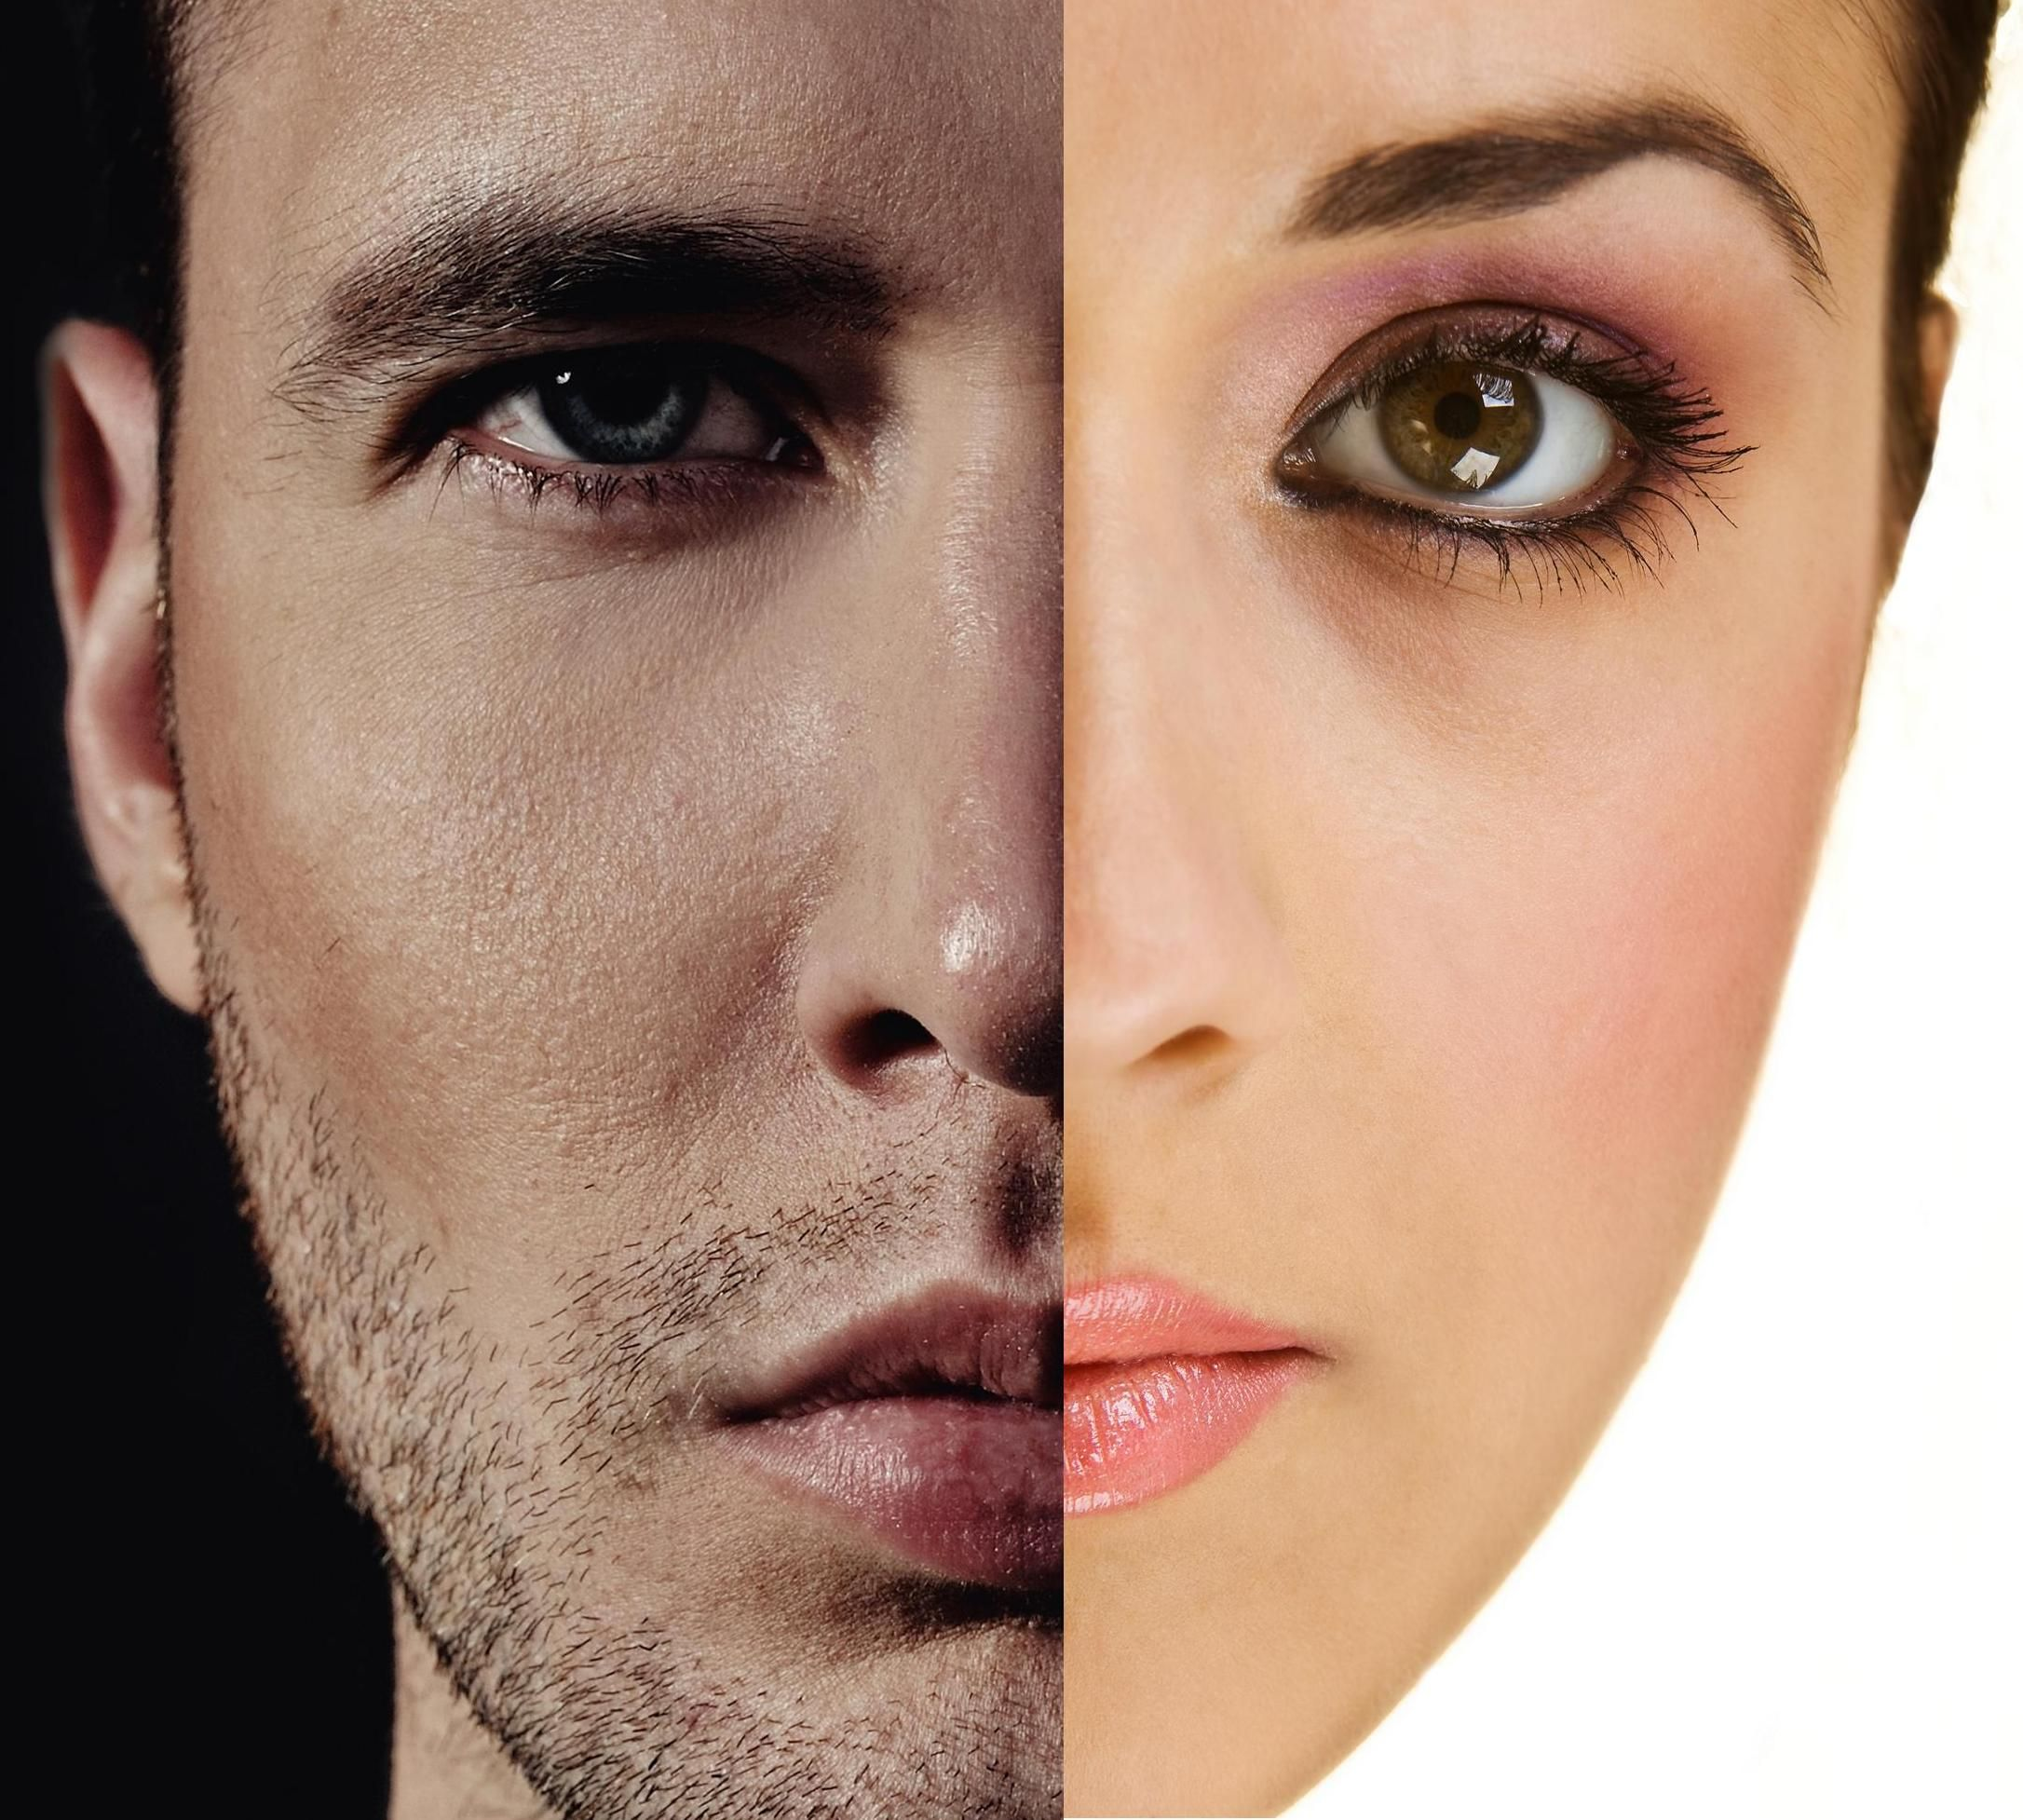 Check Out The Eyebrows People Men V Women Skin Care Eyebrows